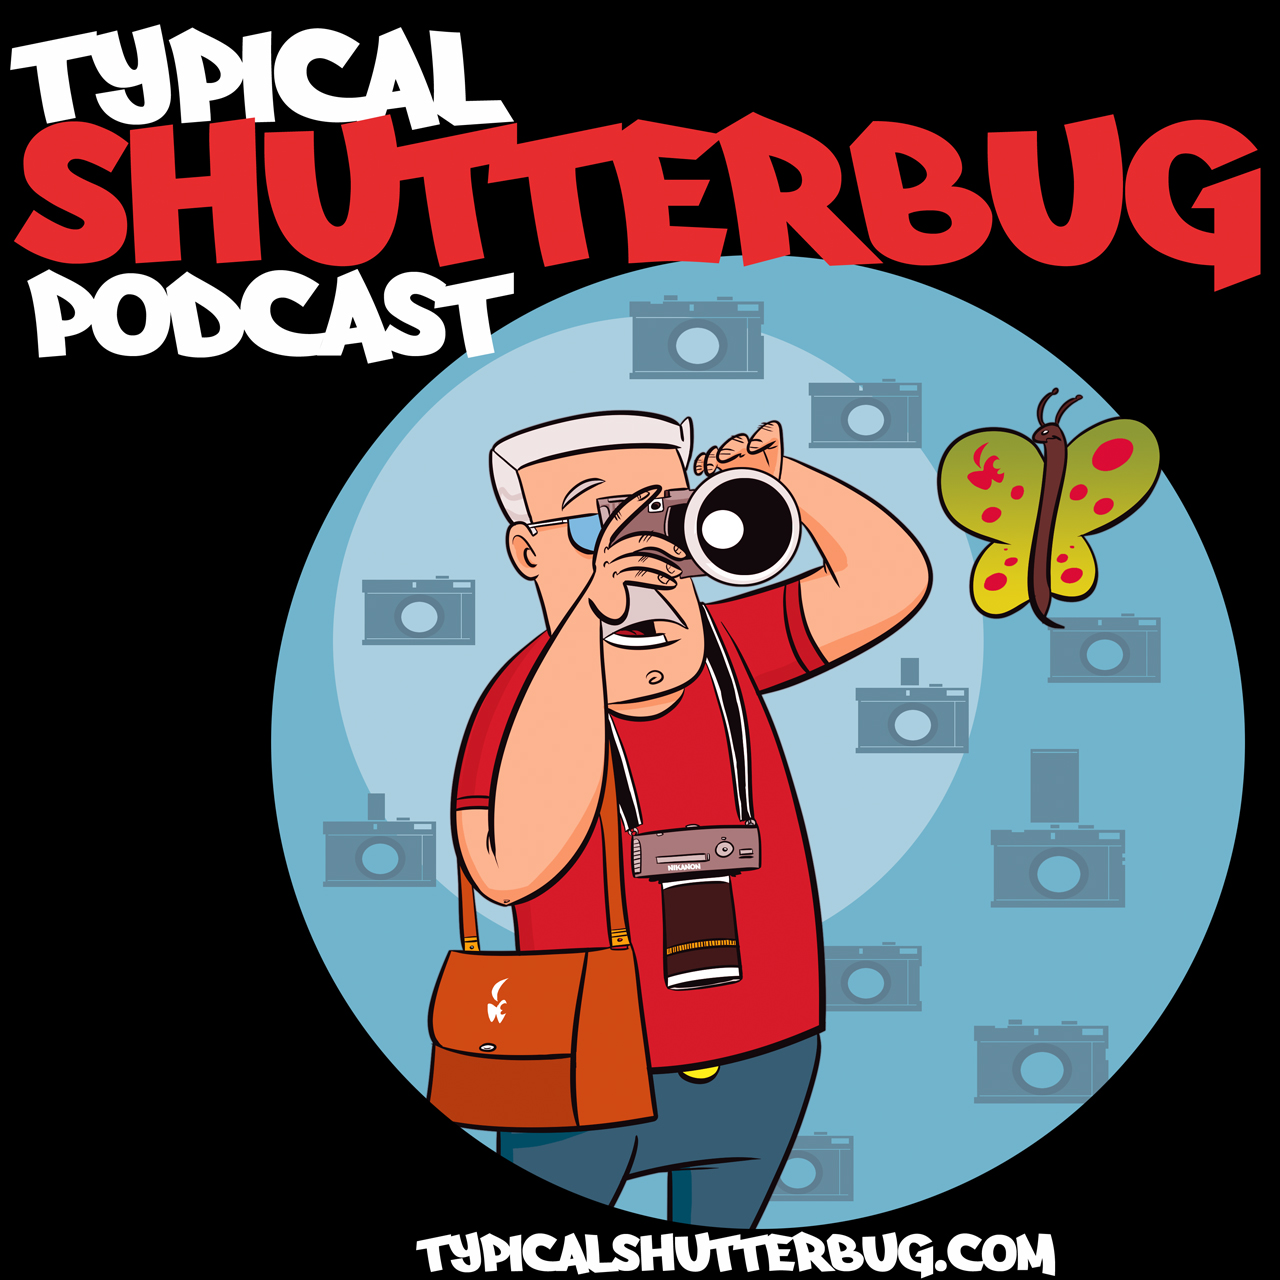 I'm on this month's Typical Shutterbug Podcast!